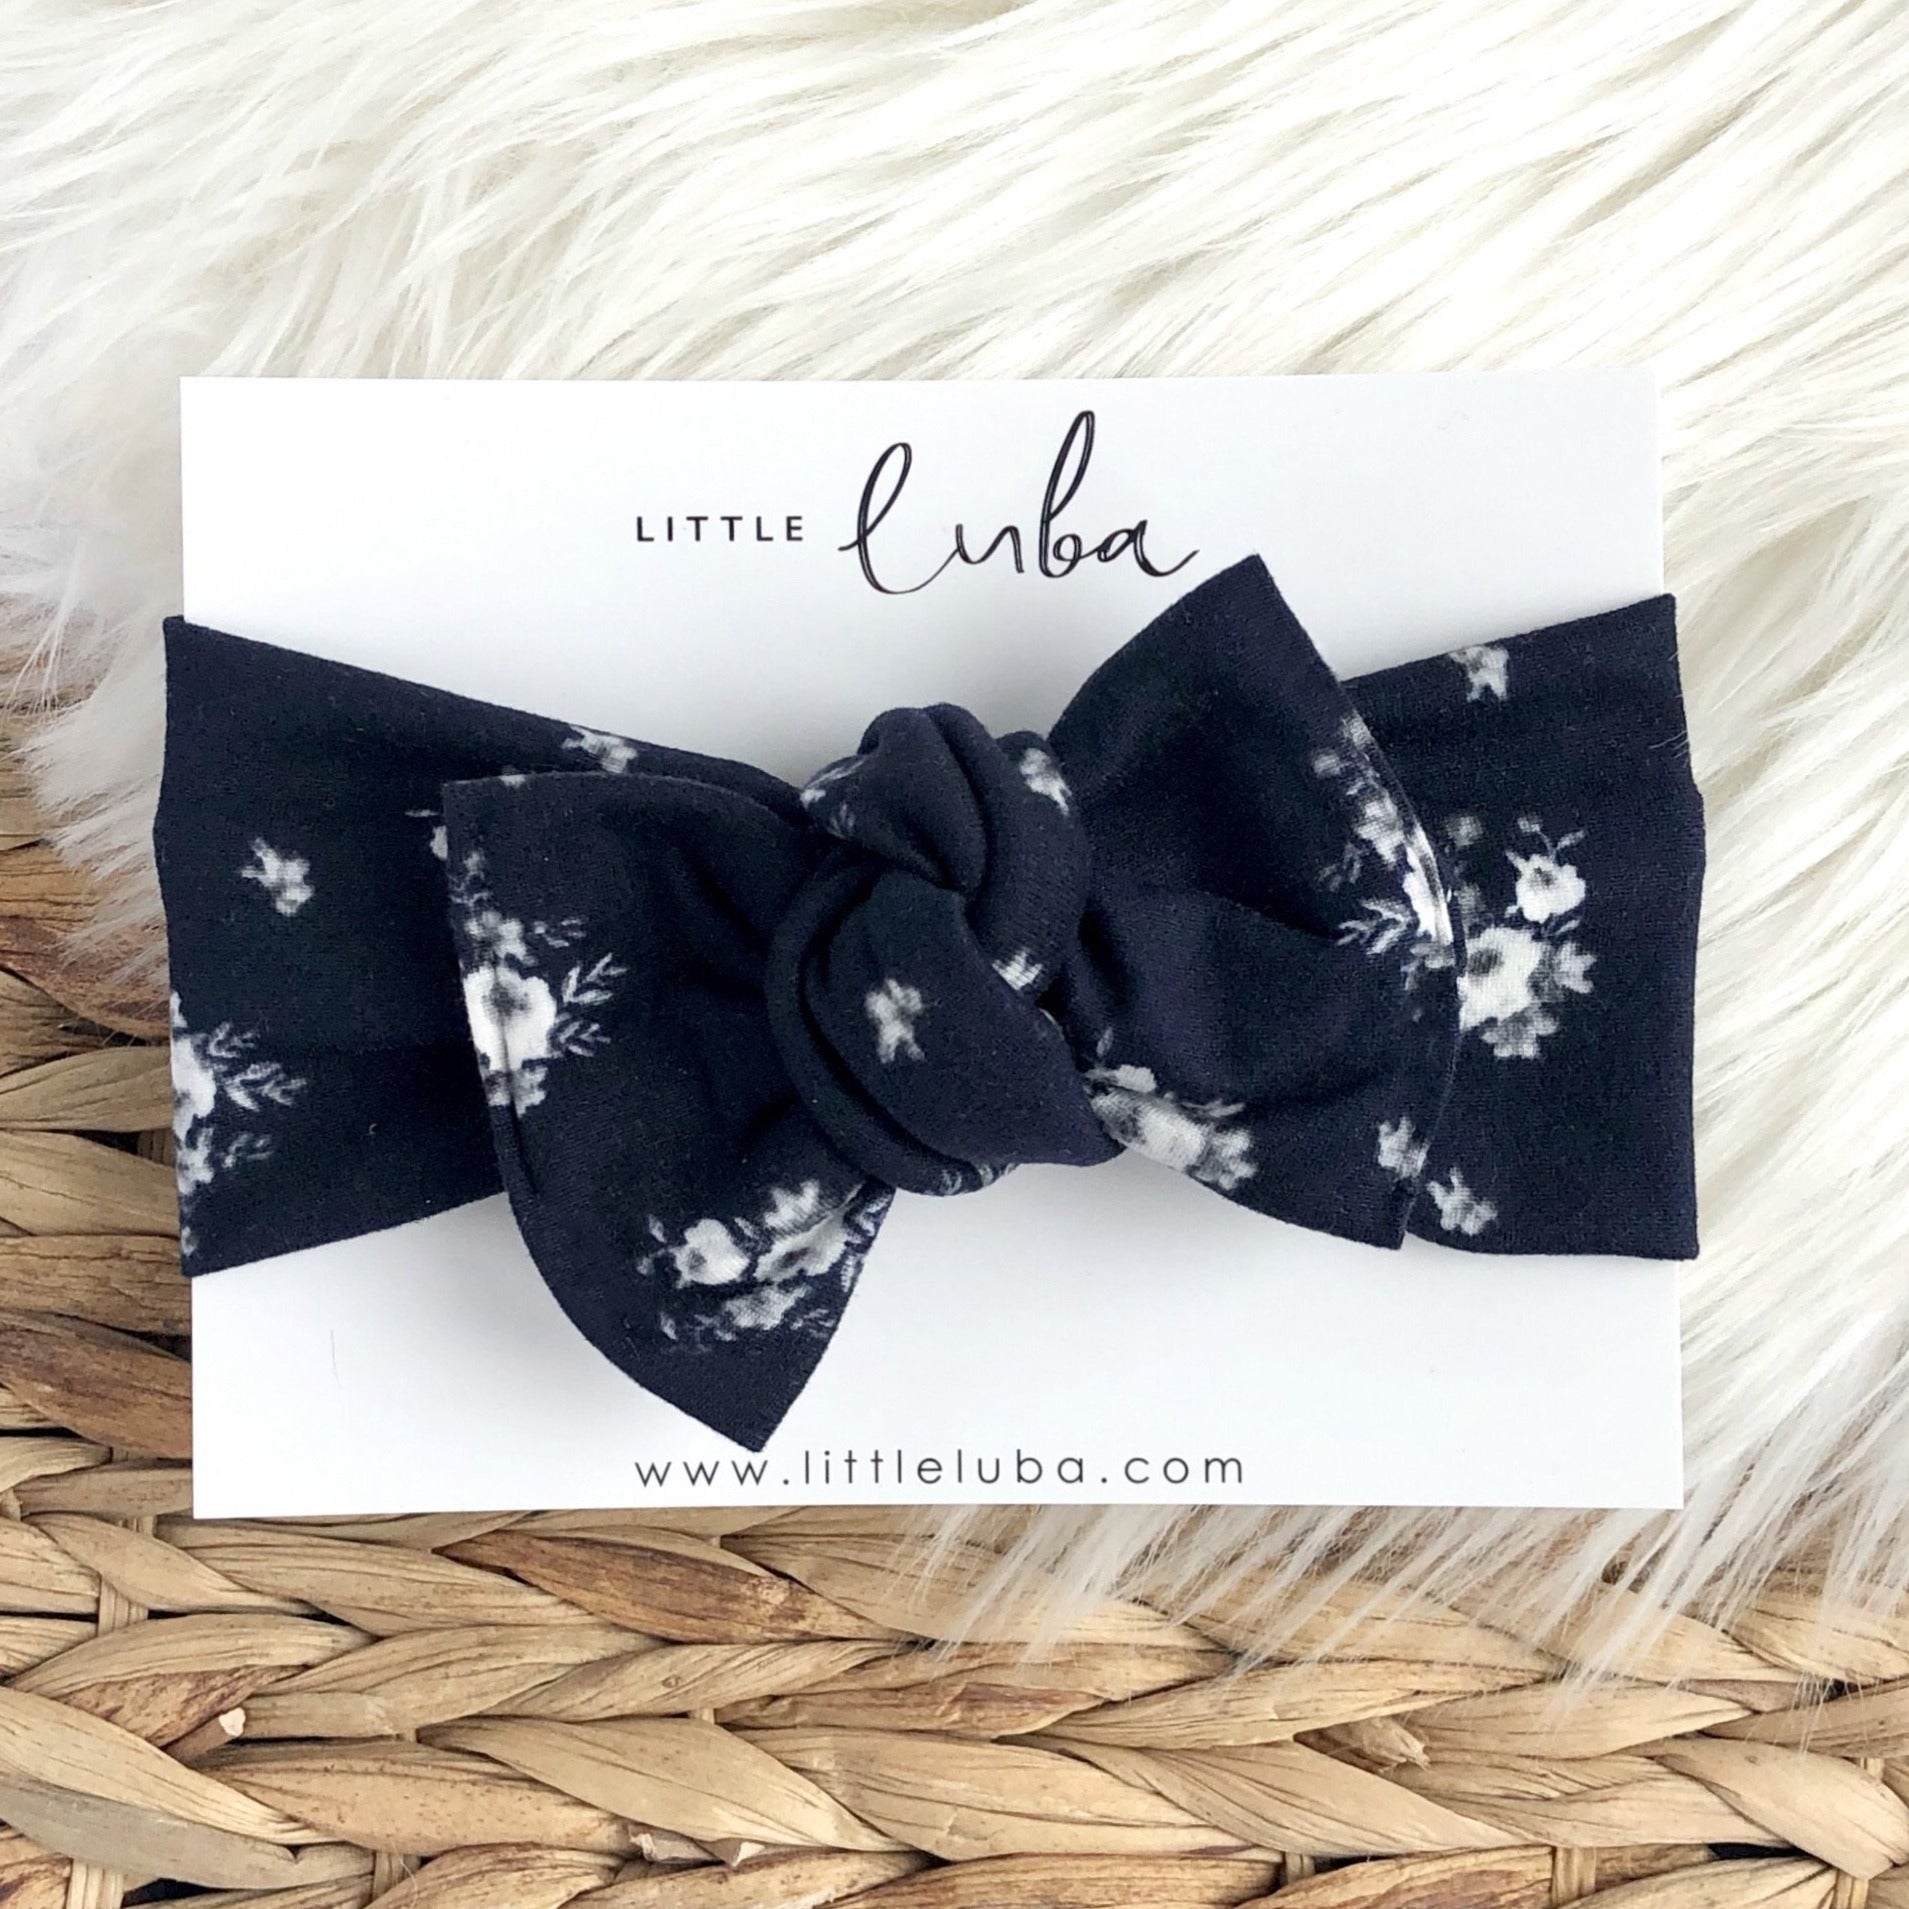 Tie on / Midnight floral